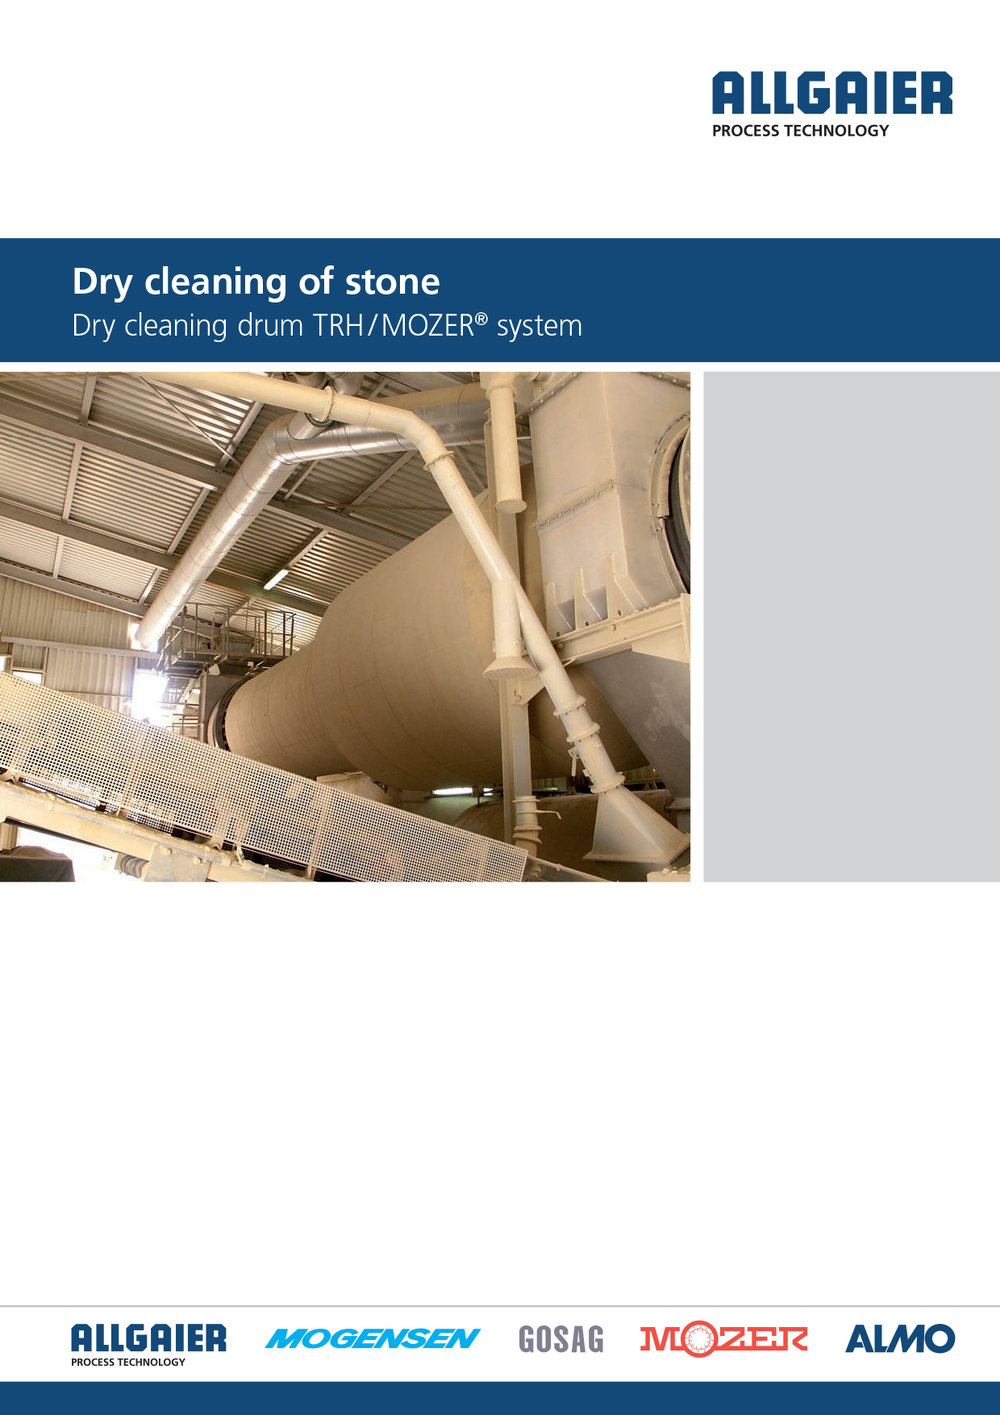 Dry cleaning of stone